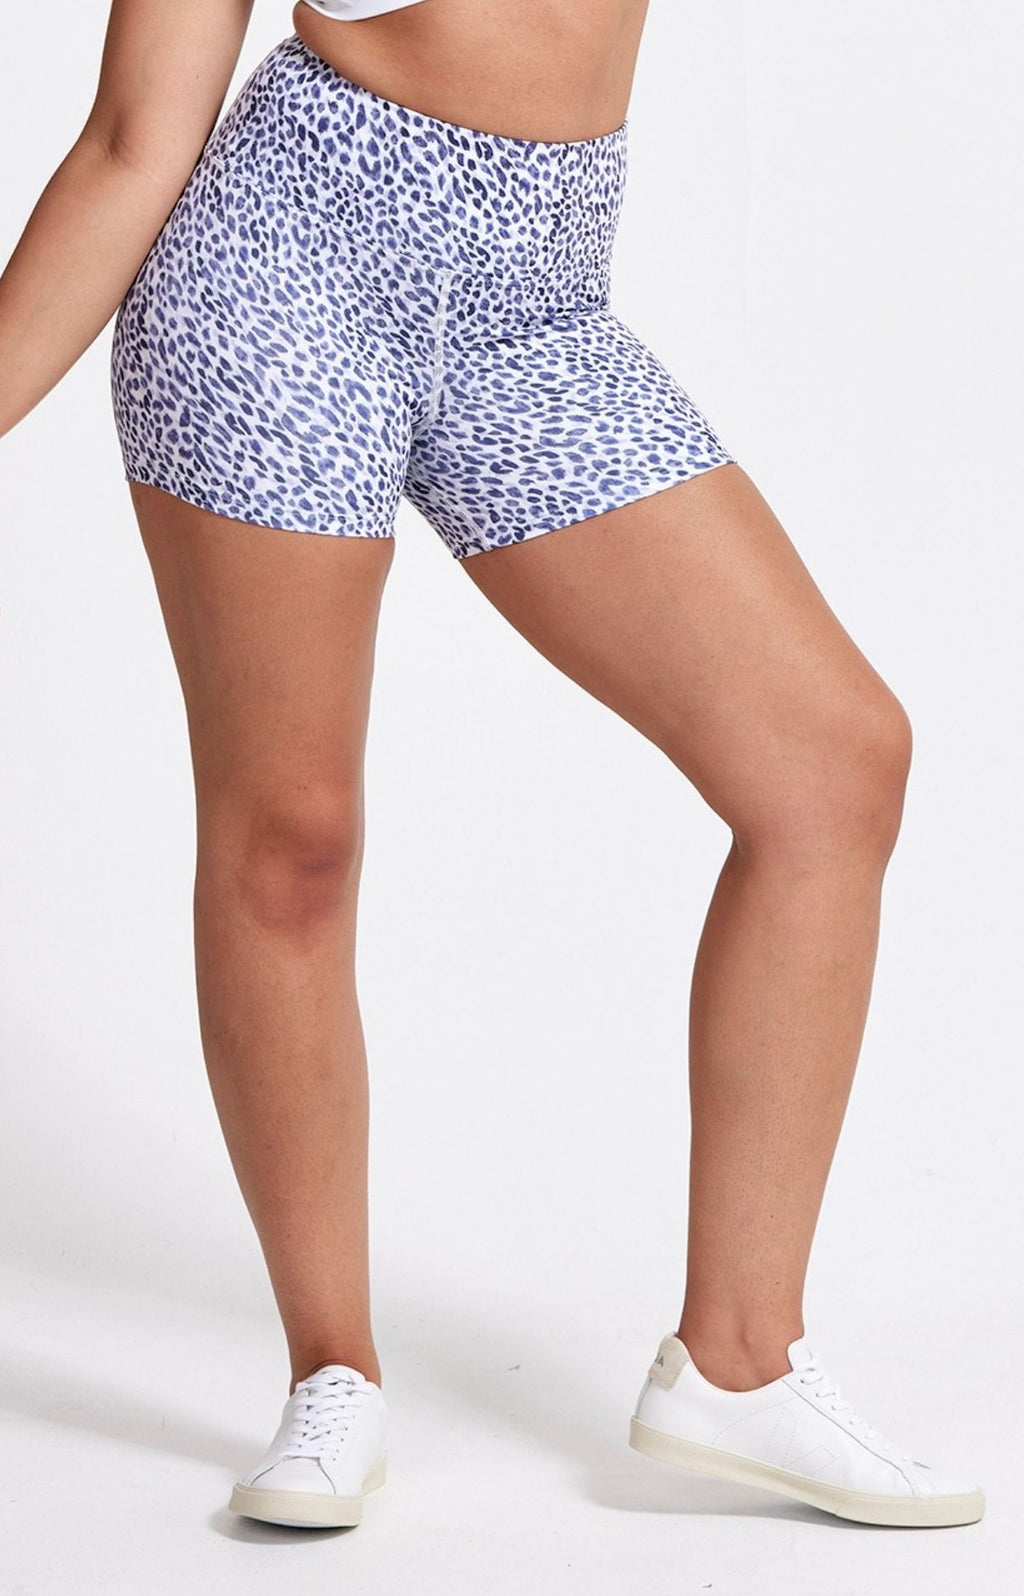 High Waisted, animal print, athletic short. Sustainable and ethical.